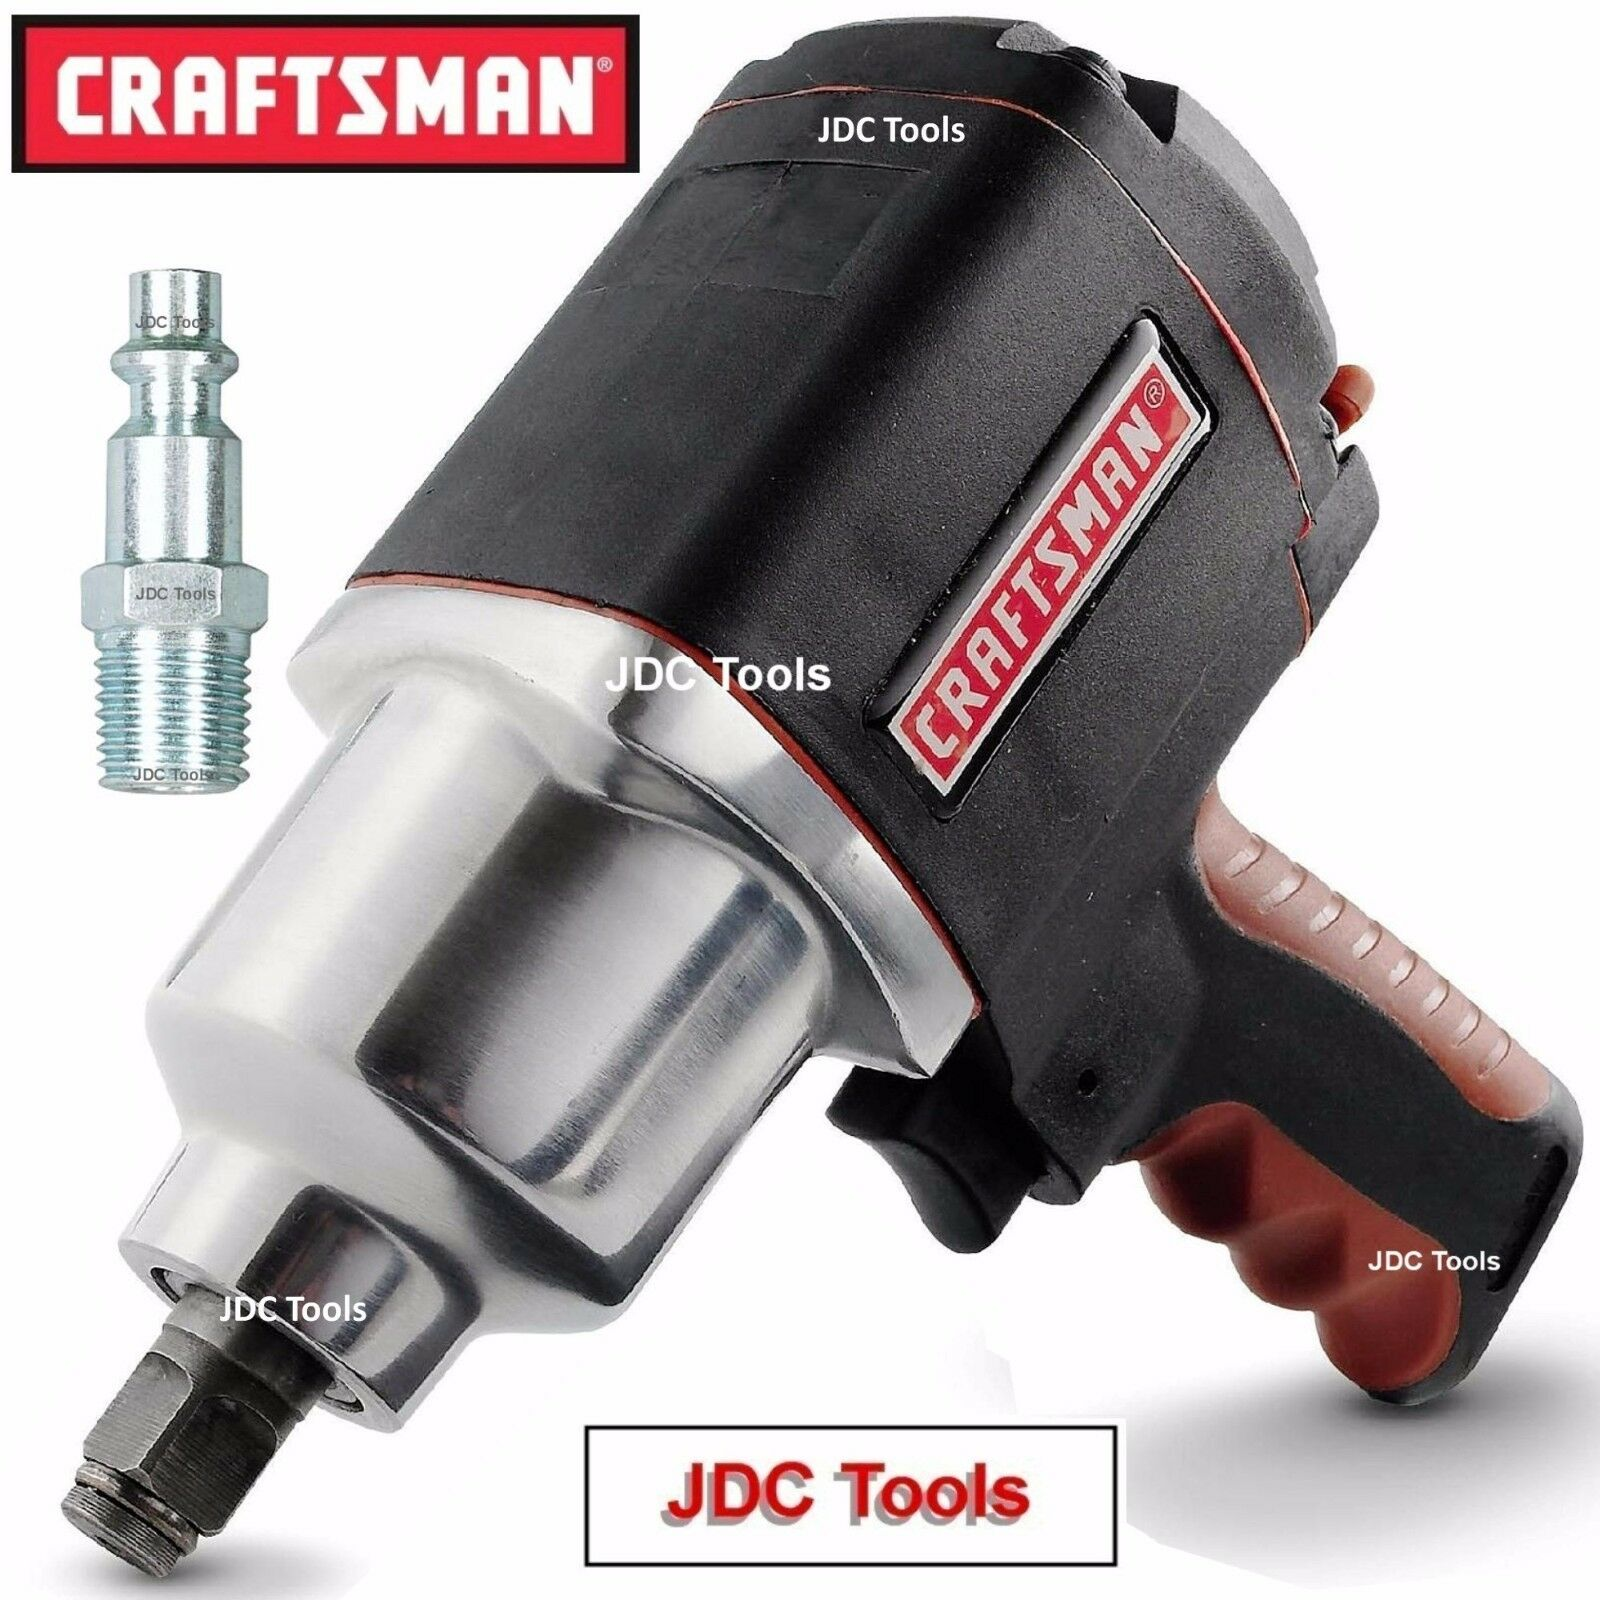 Craftsman 1/2 Air Impact Wrench High Torque Pistol Grip Tool NEW